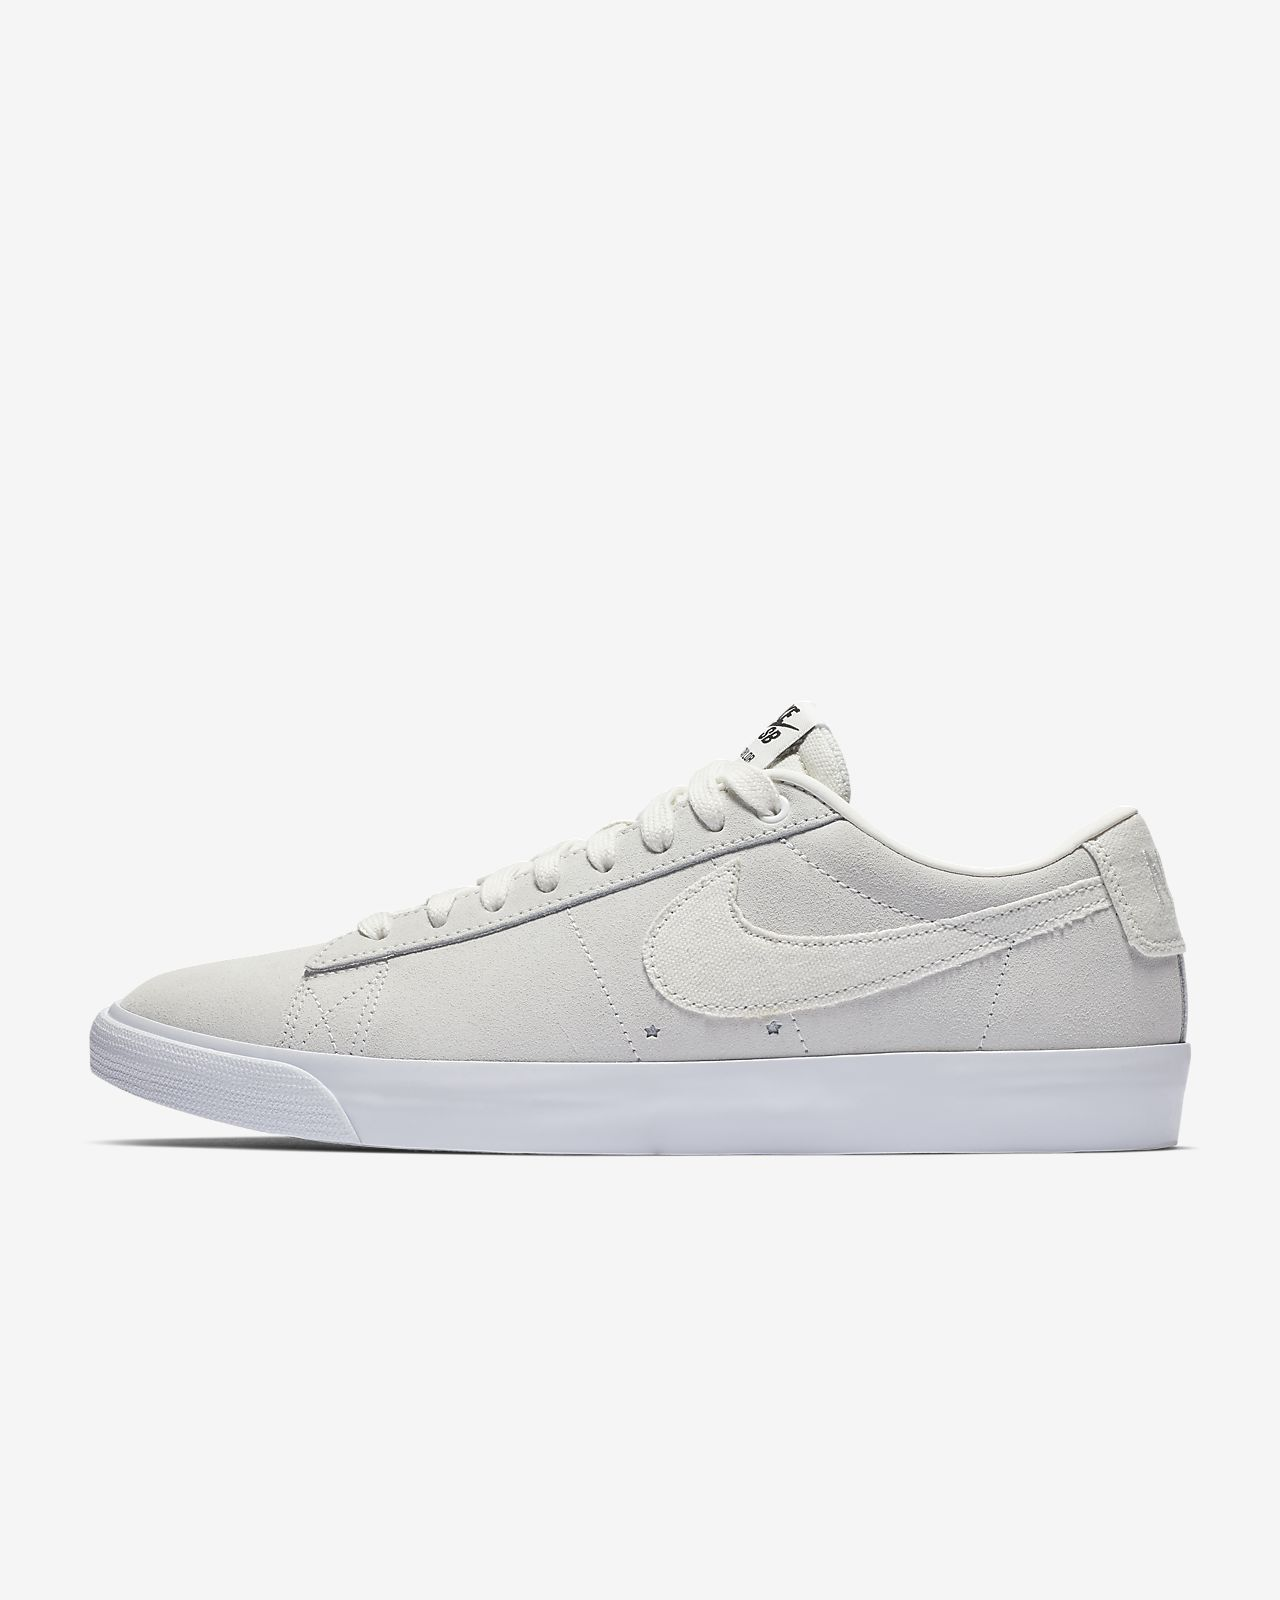 huge selection of c4c55 55310 clearance mennns nike blazer hvit 800c9 66b38